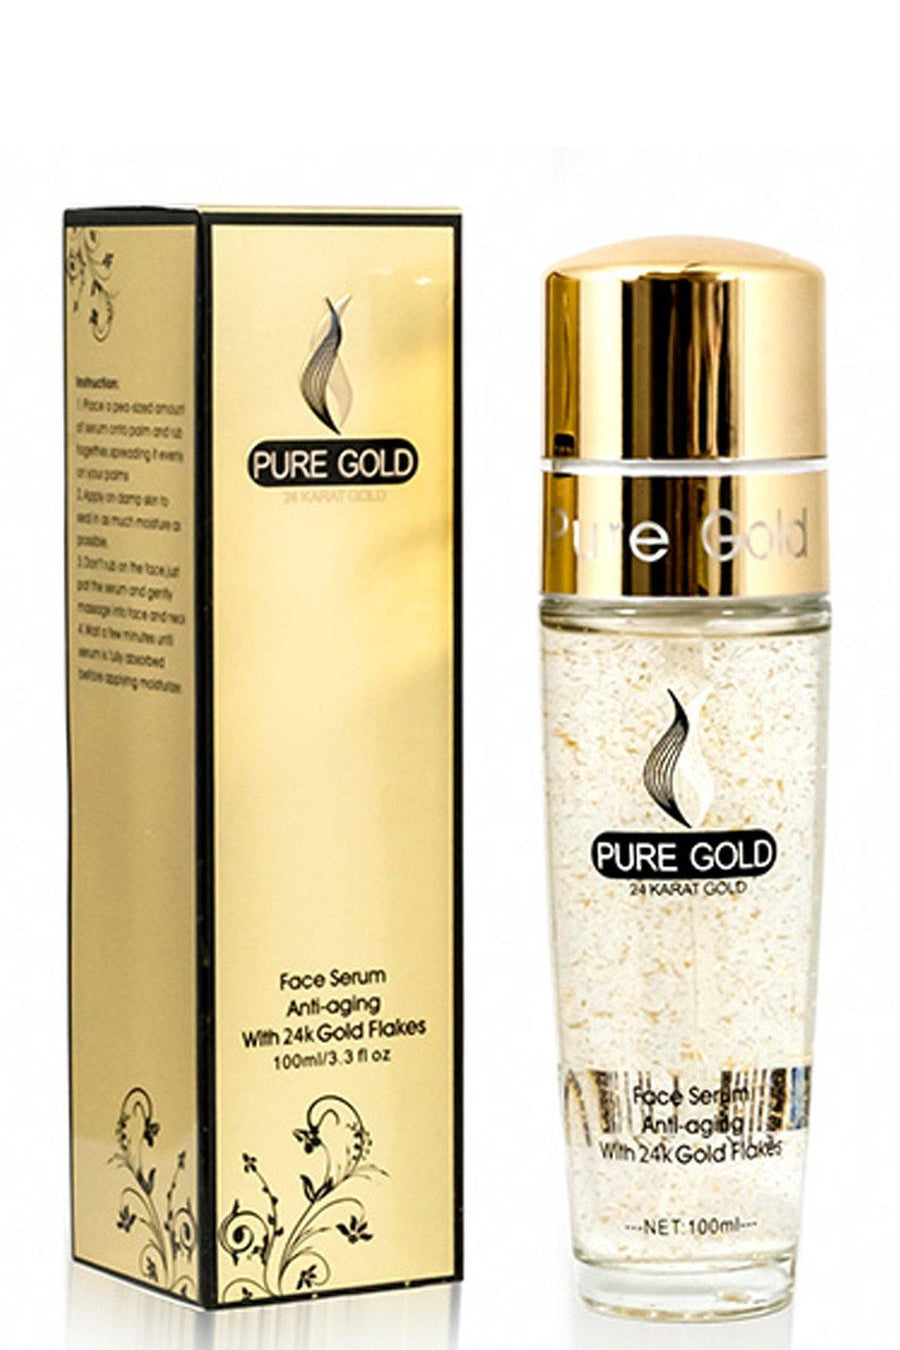 Anti-Aging 24k Gold Flake Face Serum - Blend Mineral Cosmetics